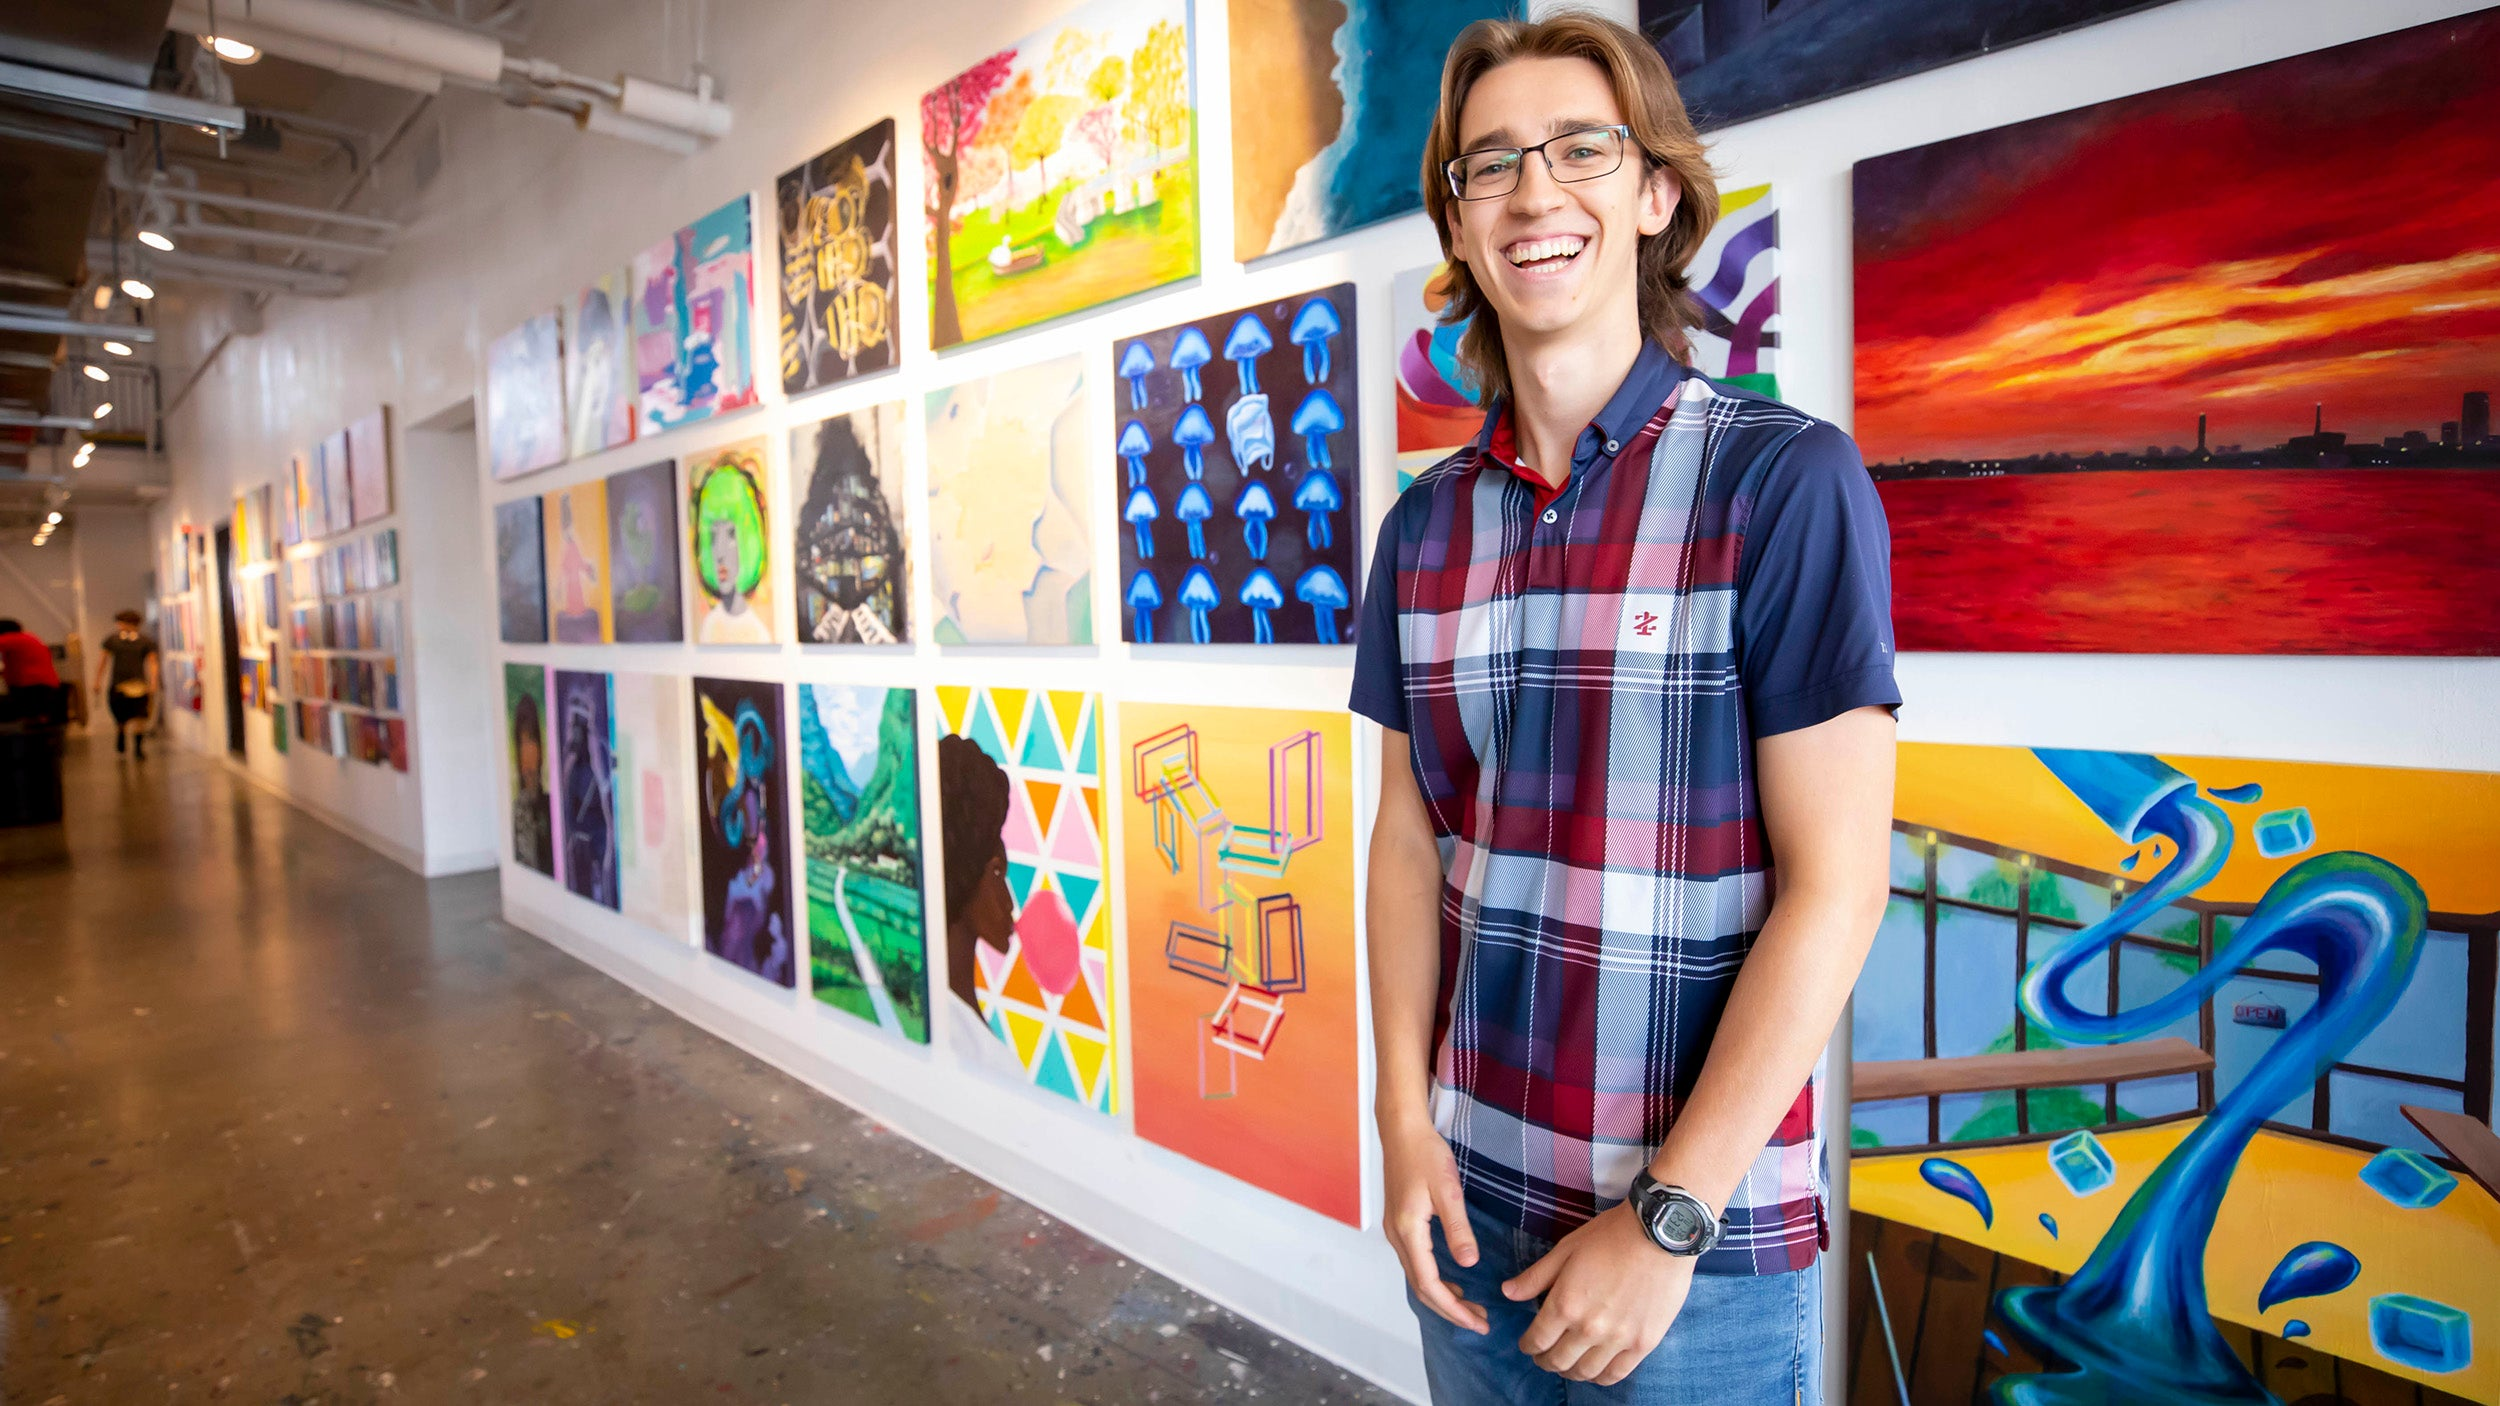 Harvard first year student standing in front of student artwork on wall.